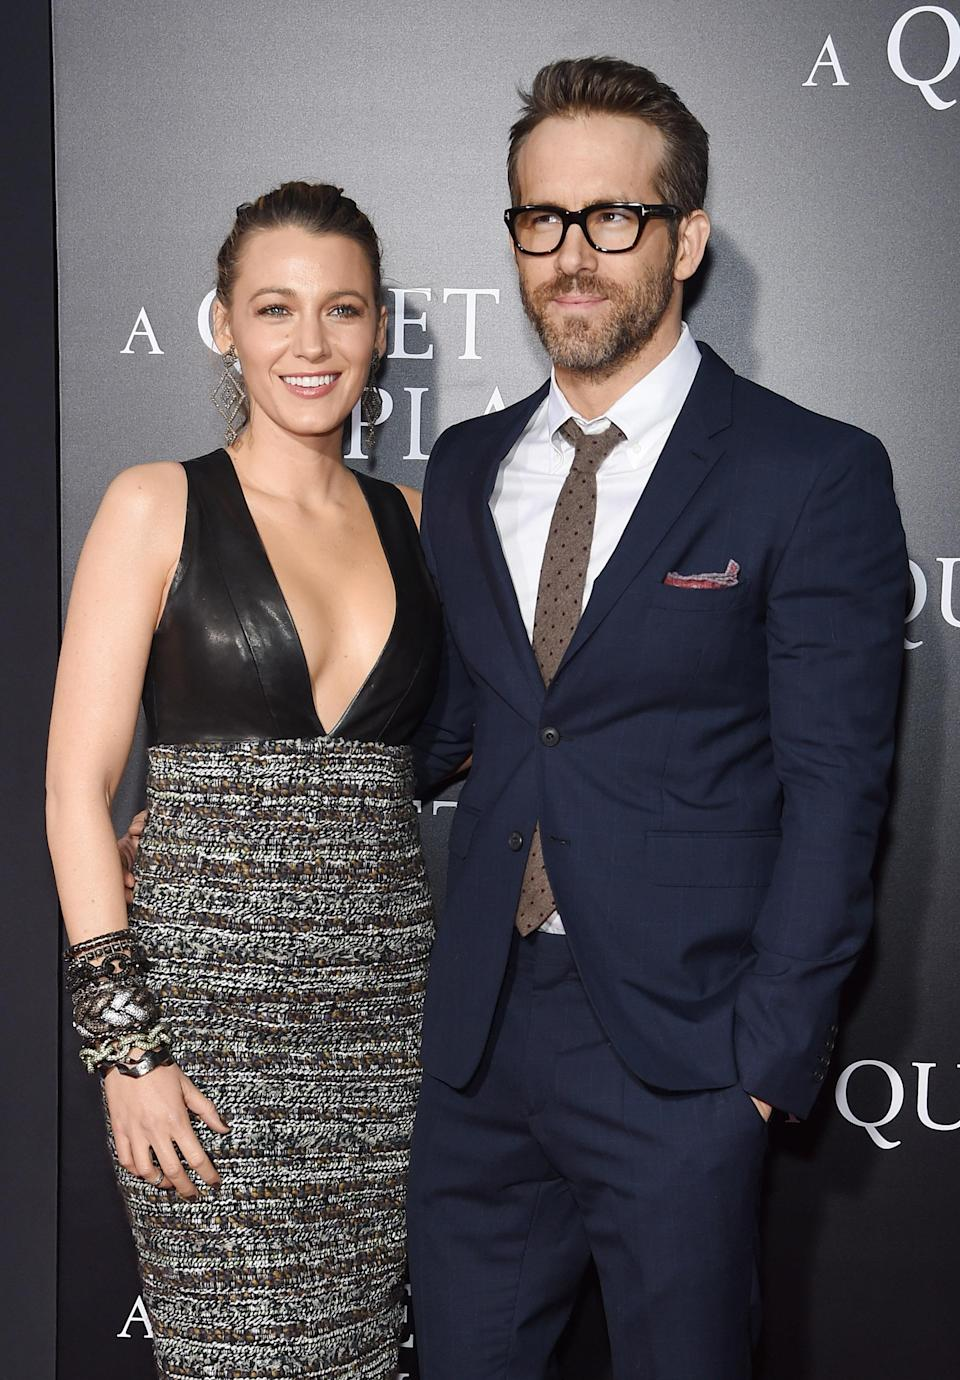 """The couple attended the premiere of """"A Quiet Place"""" Monday night. ((Photo: Jamie McCarthy/Getty Images)"""